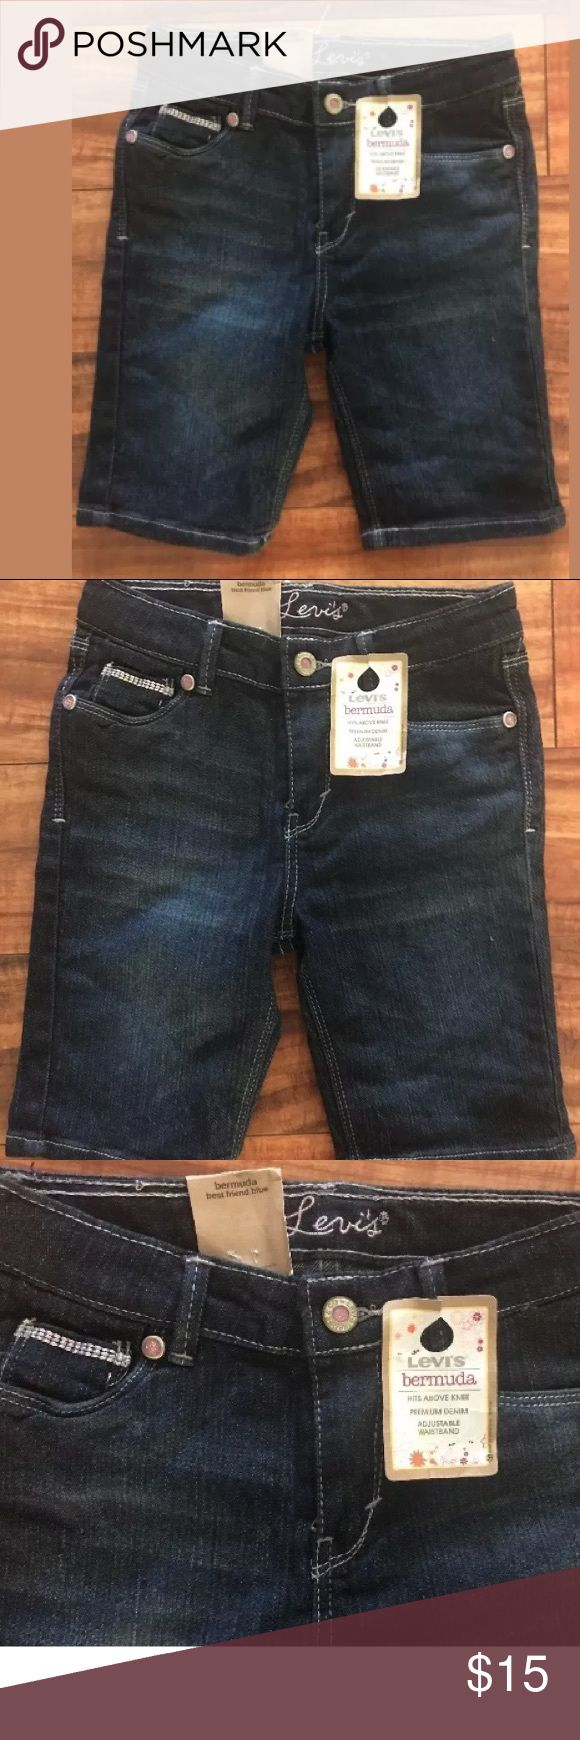 Levi's size 6X Bermuda shorts dark denim jeans Levi's  Bermuda  Size 6X  Brand new with tags ($34 from Macy's)  Adjustable inside waistband  52% Ramie 28% cotton 18% polyester 2% spandex Levi's Bottoms Shorts